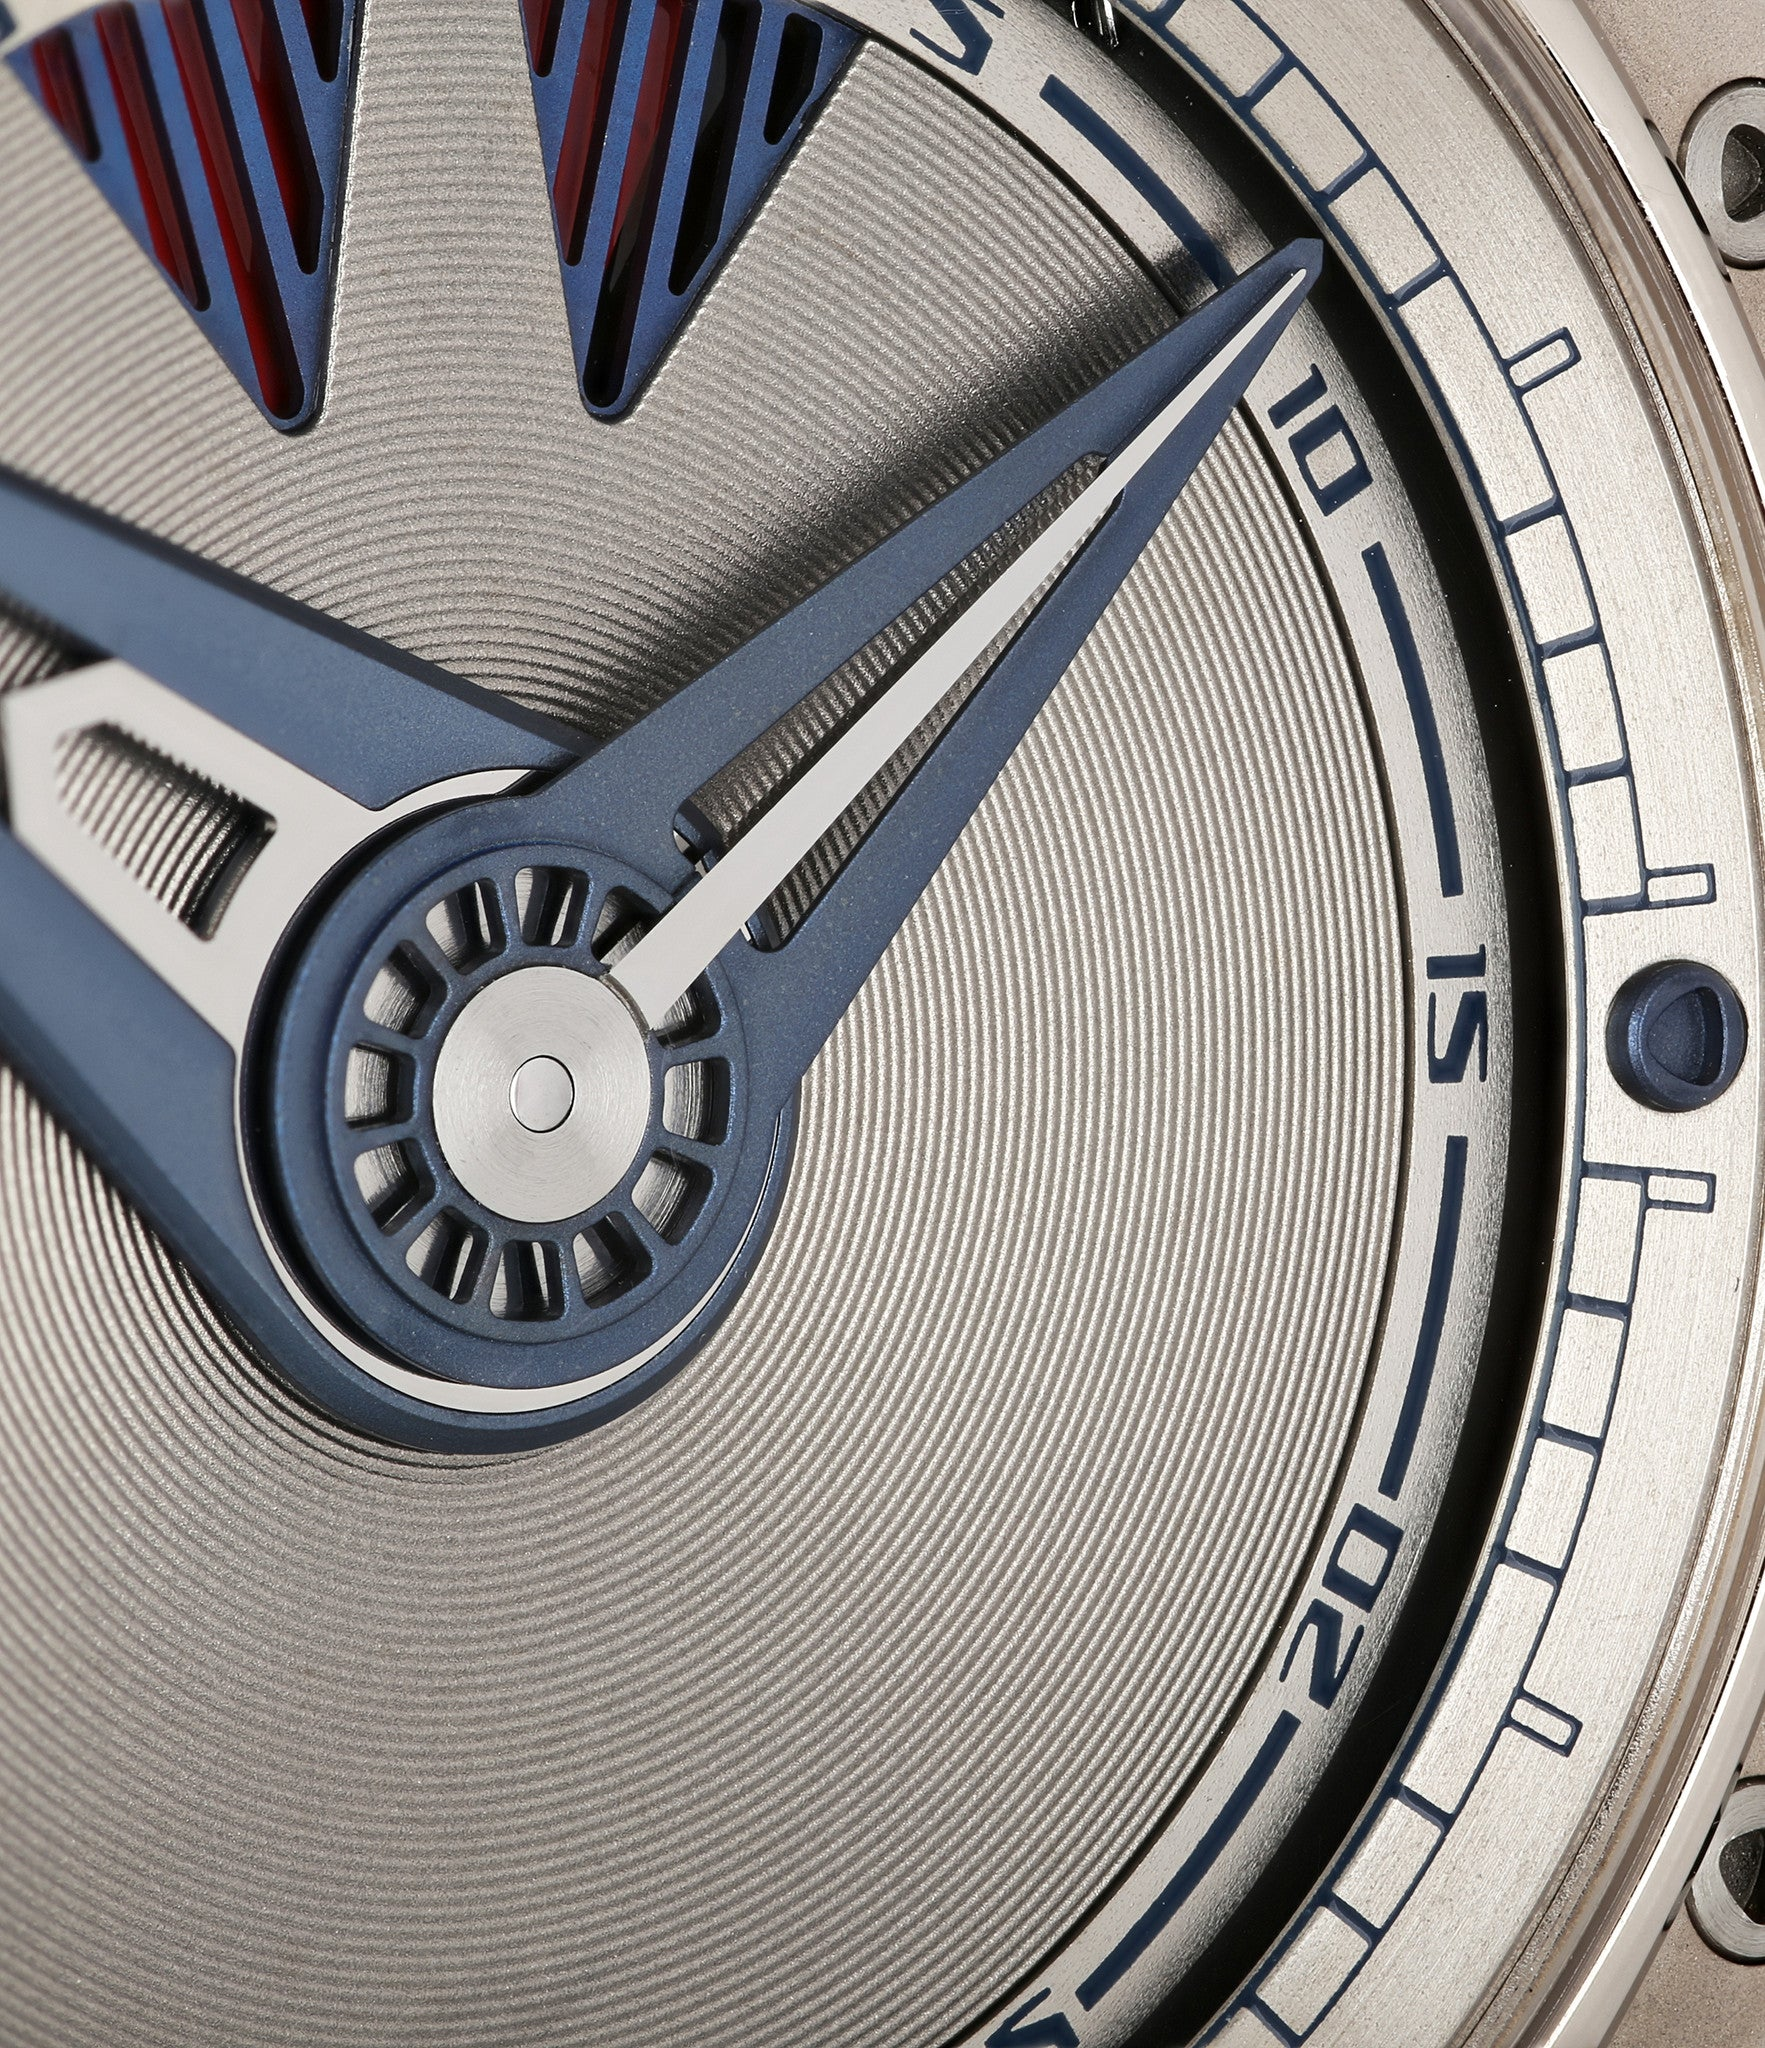 buy De Bethune DB22 power pre-owned watch online in white gold with power reserve and guilloche dial from Swiss independent watchmaker  with authenticity guaranteed